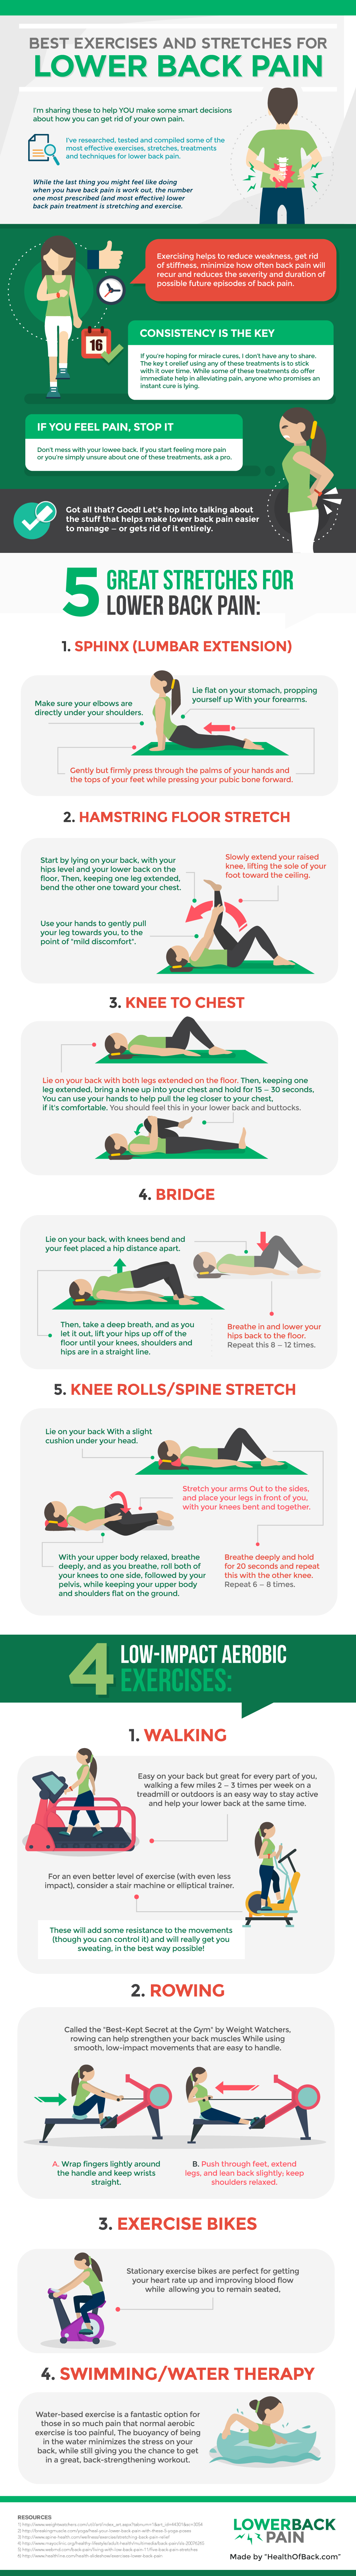 9 Best Exercises And Stretches For Lower Back Pain Hd